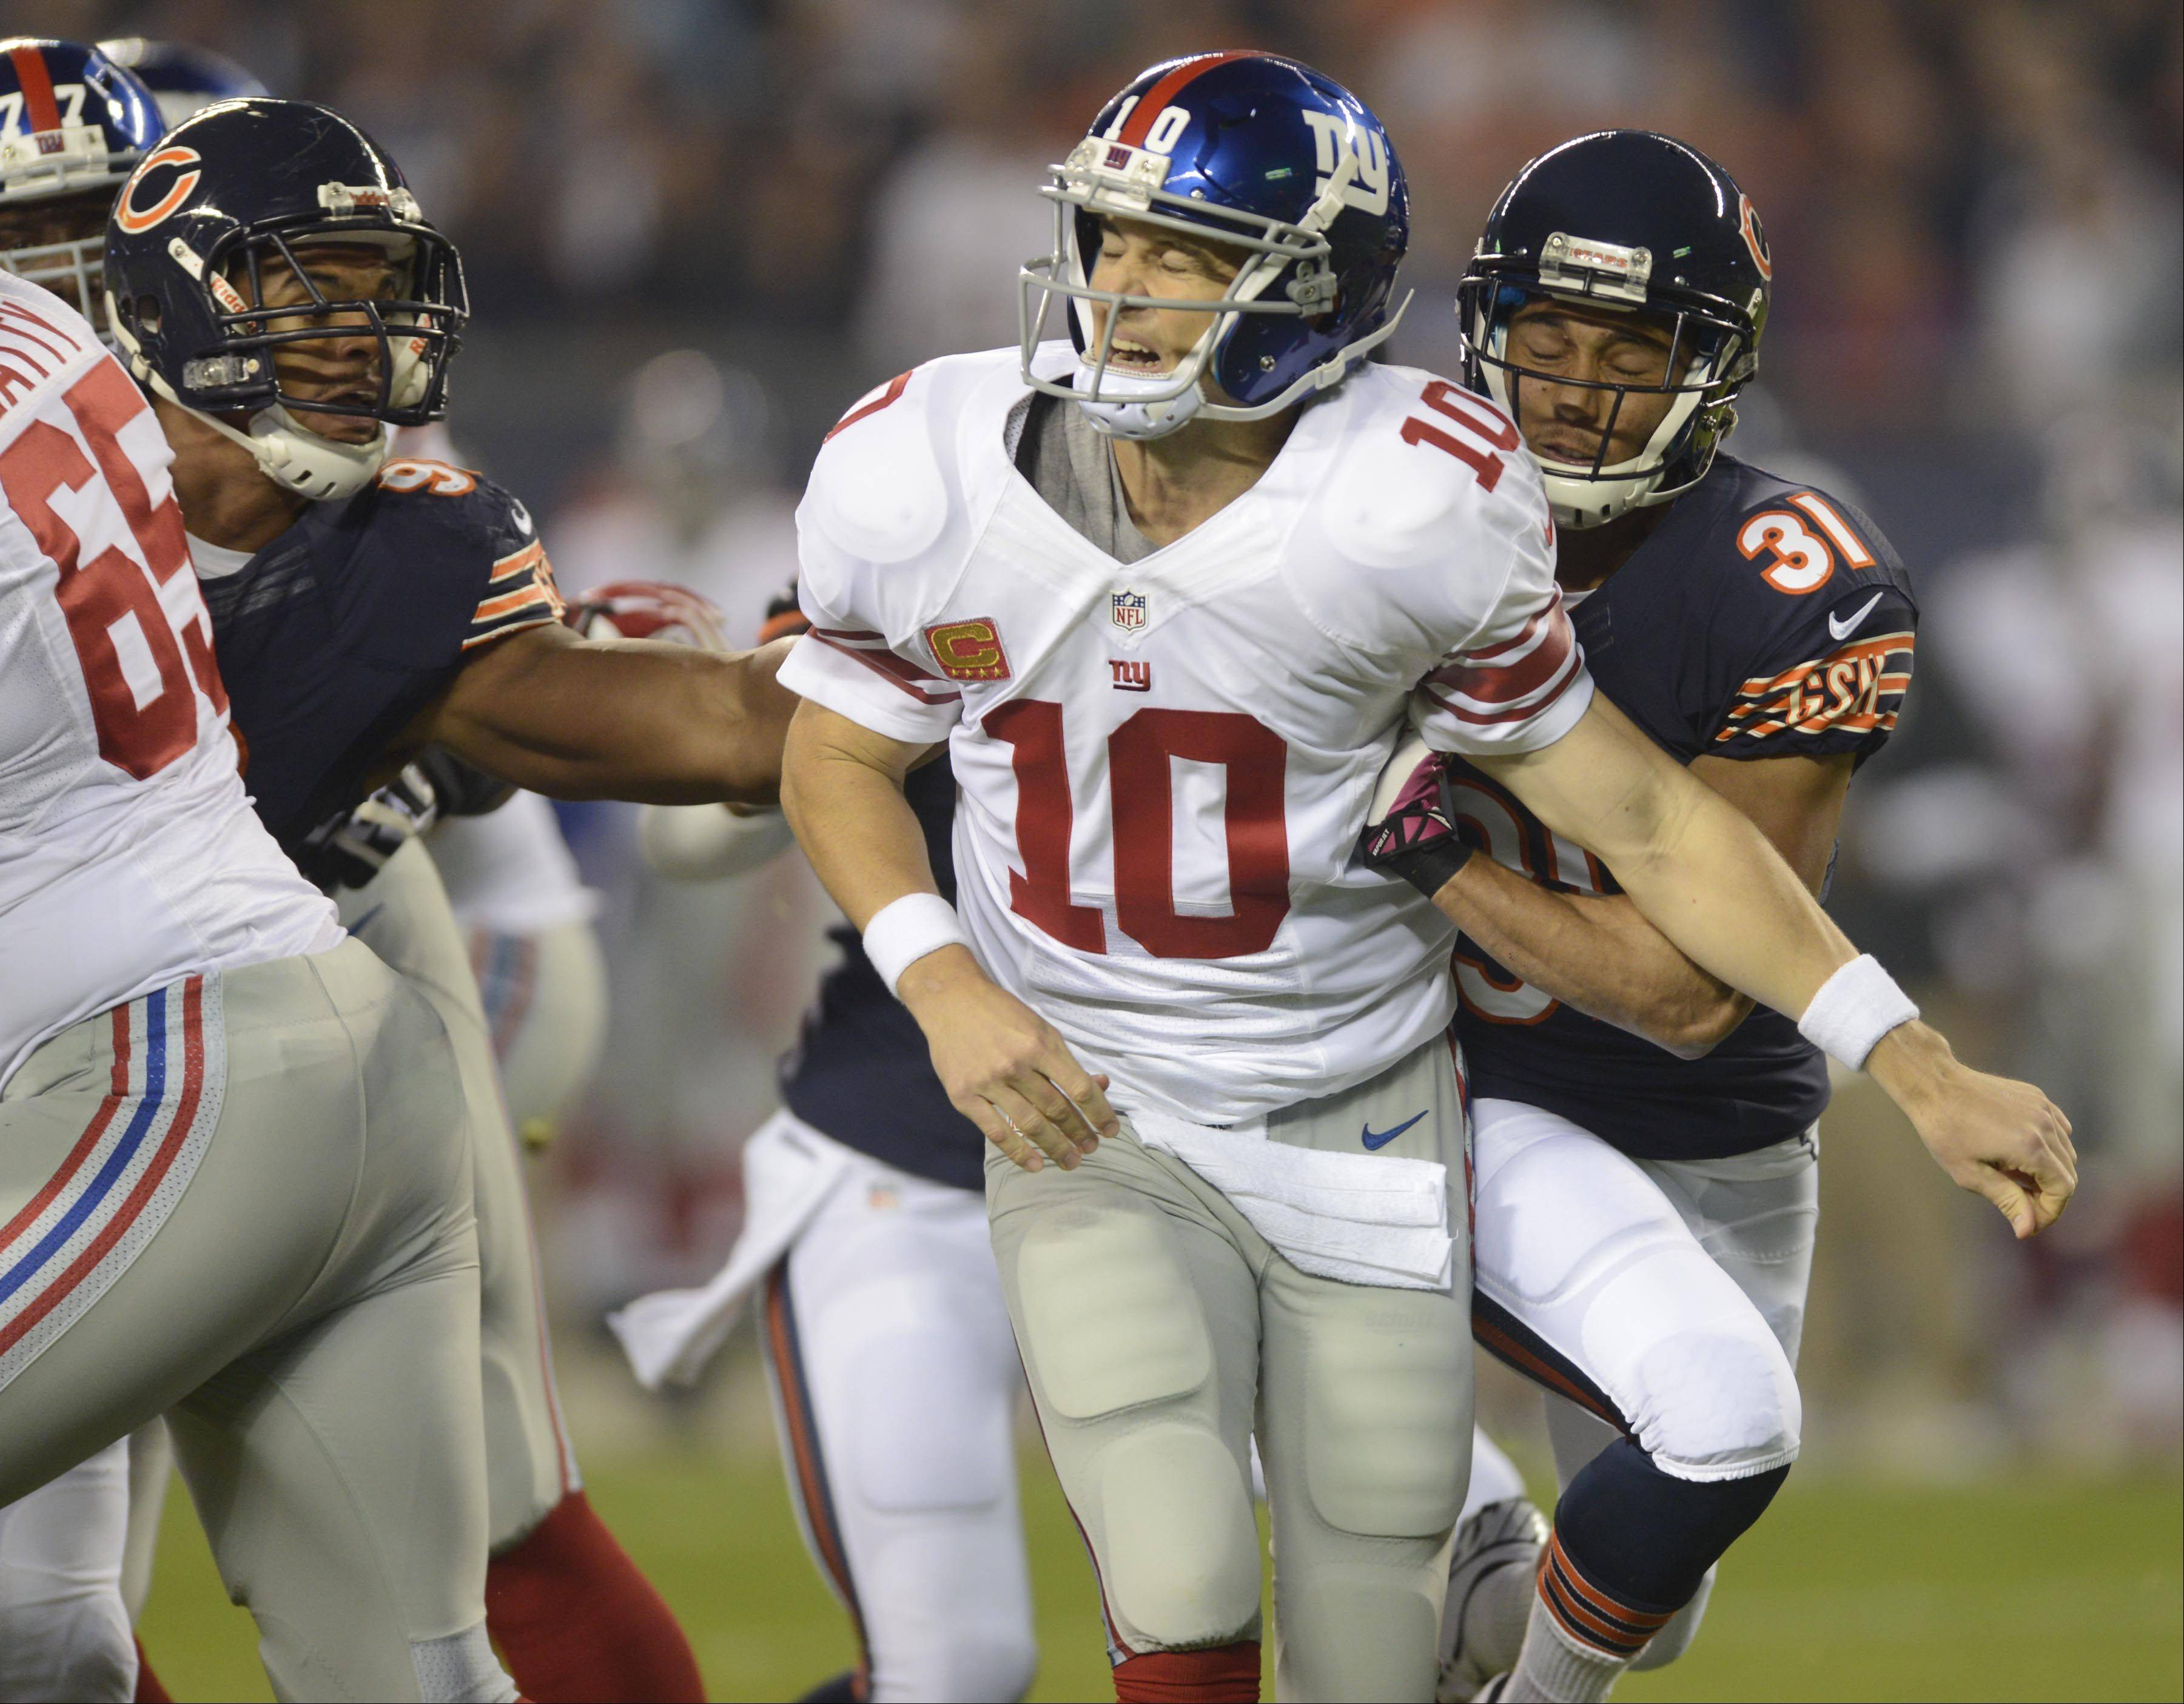 New York Giants quarterback Eli Manning winces as he is hit Thursday by Bears defenders Isaiah Frey and Corey Wootton.